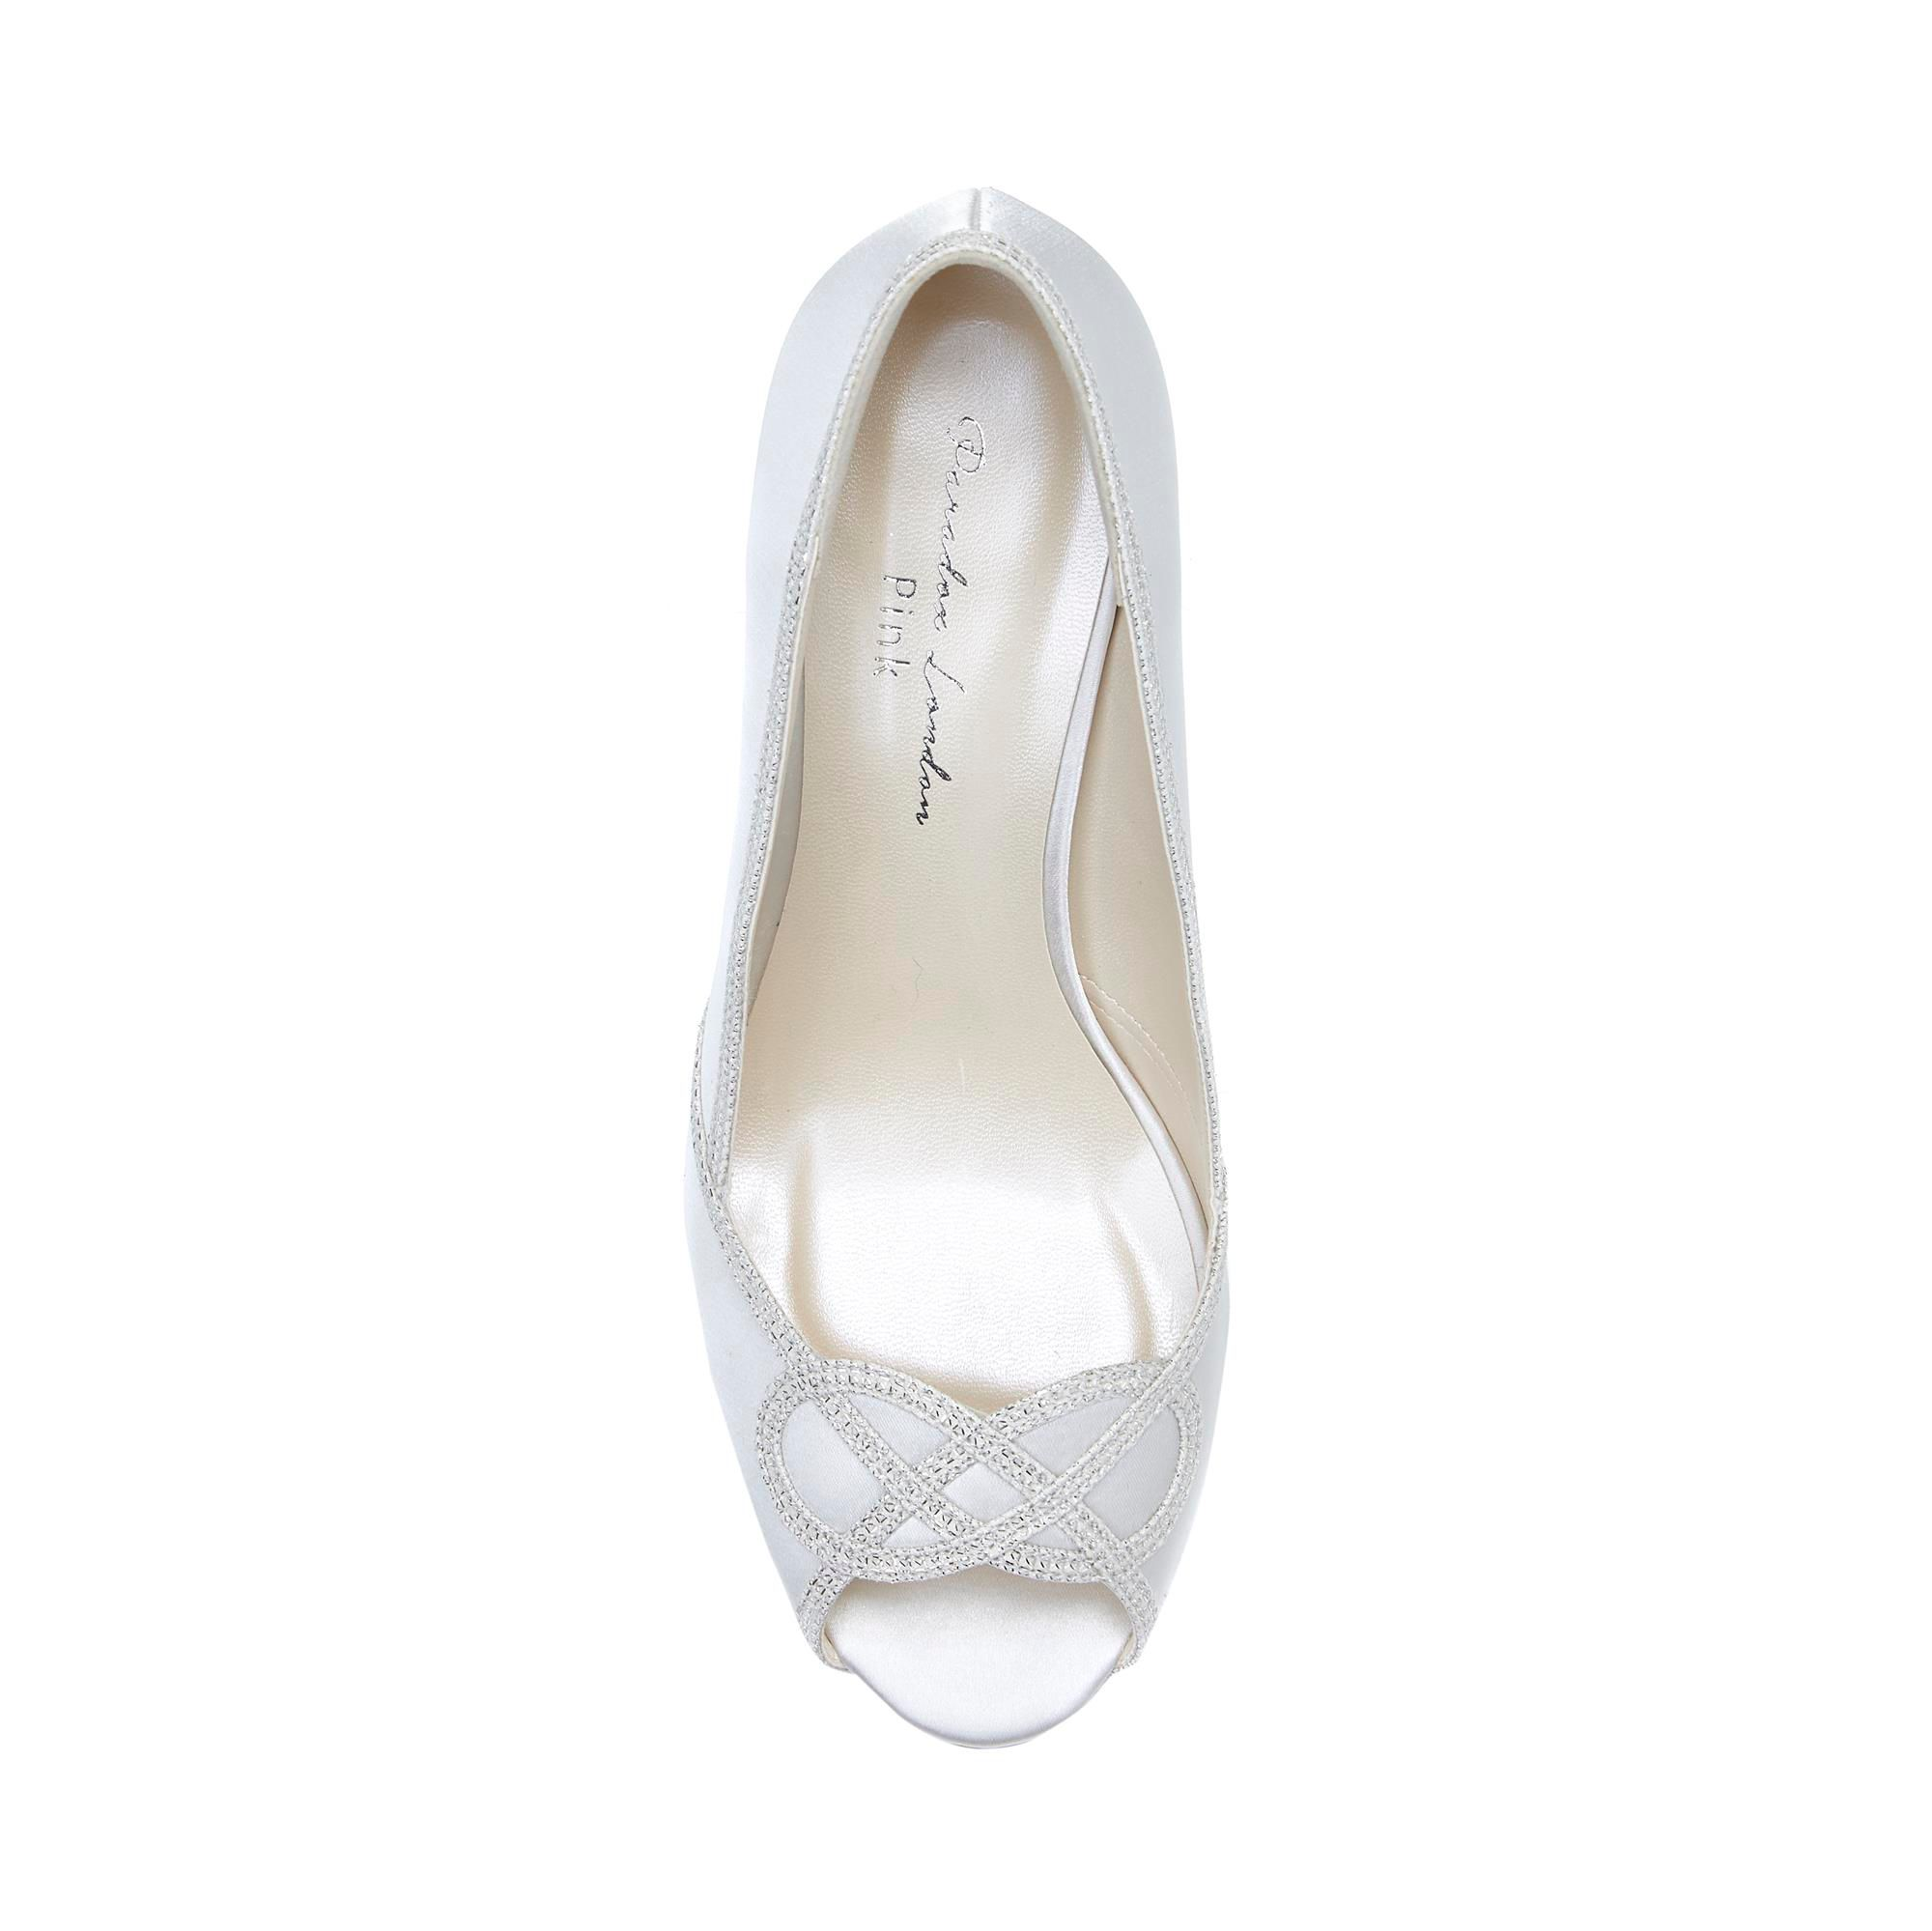 9f8874437a2 paradox london pink carenza satin mid heel peep toe shoes - house of fraser